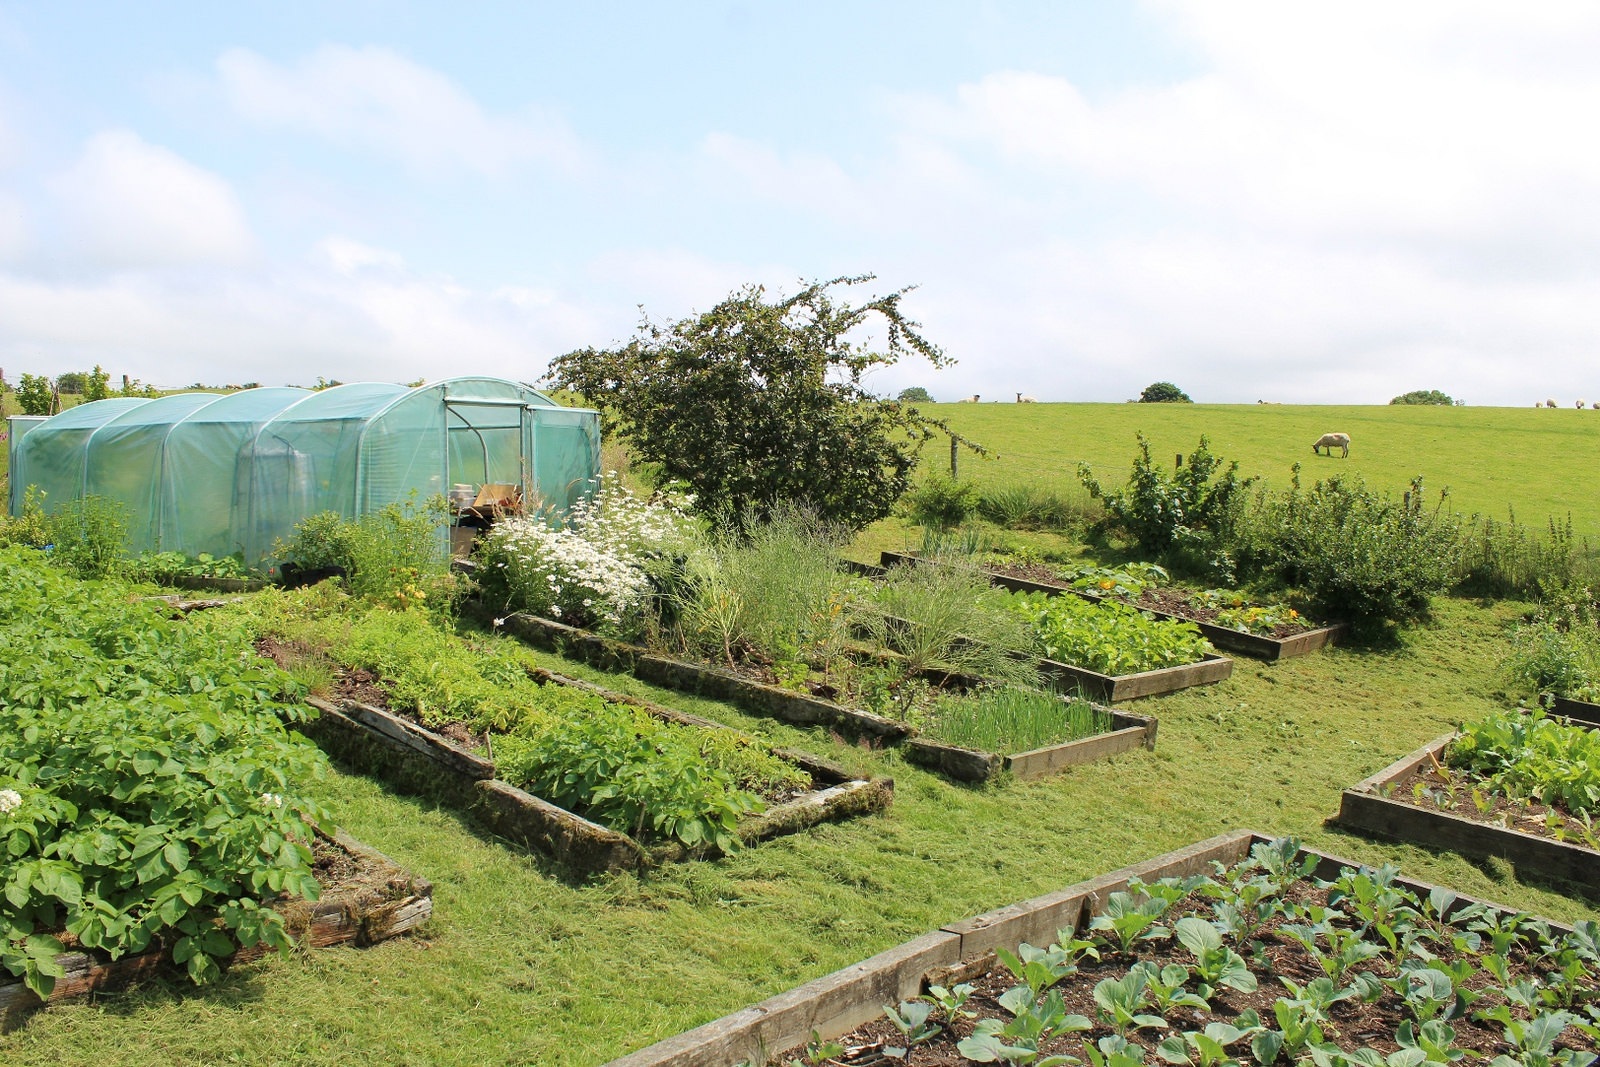 Permaculture in Africa, a sustainable way to grow